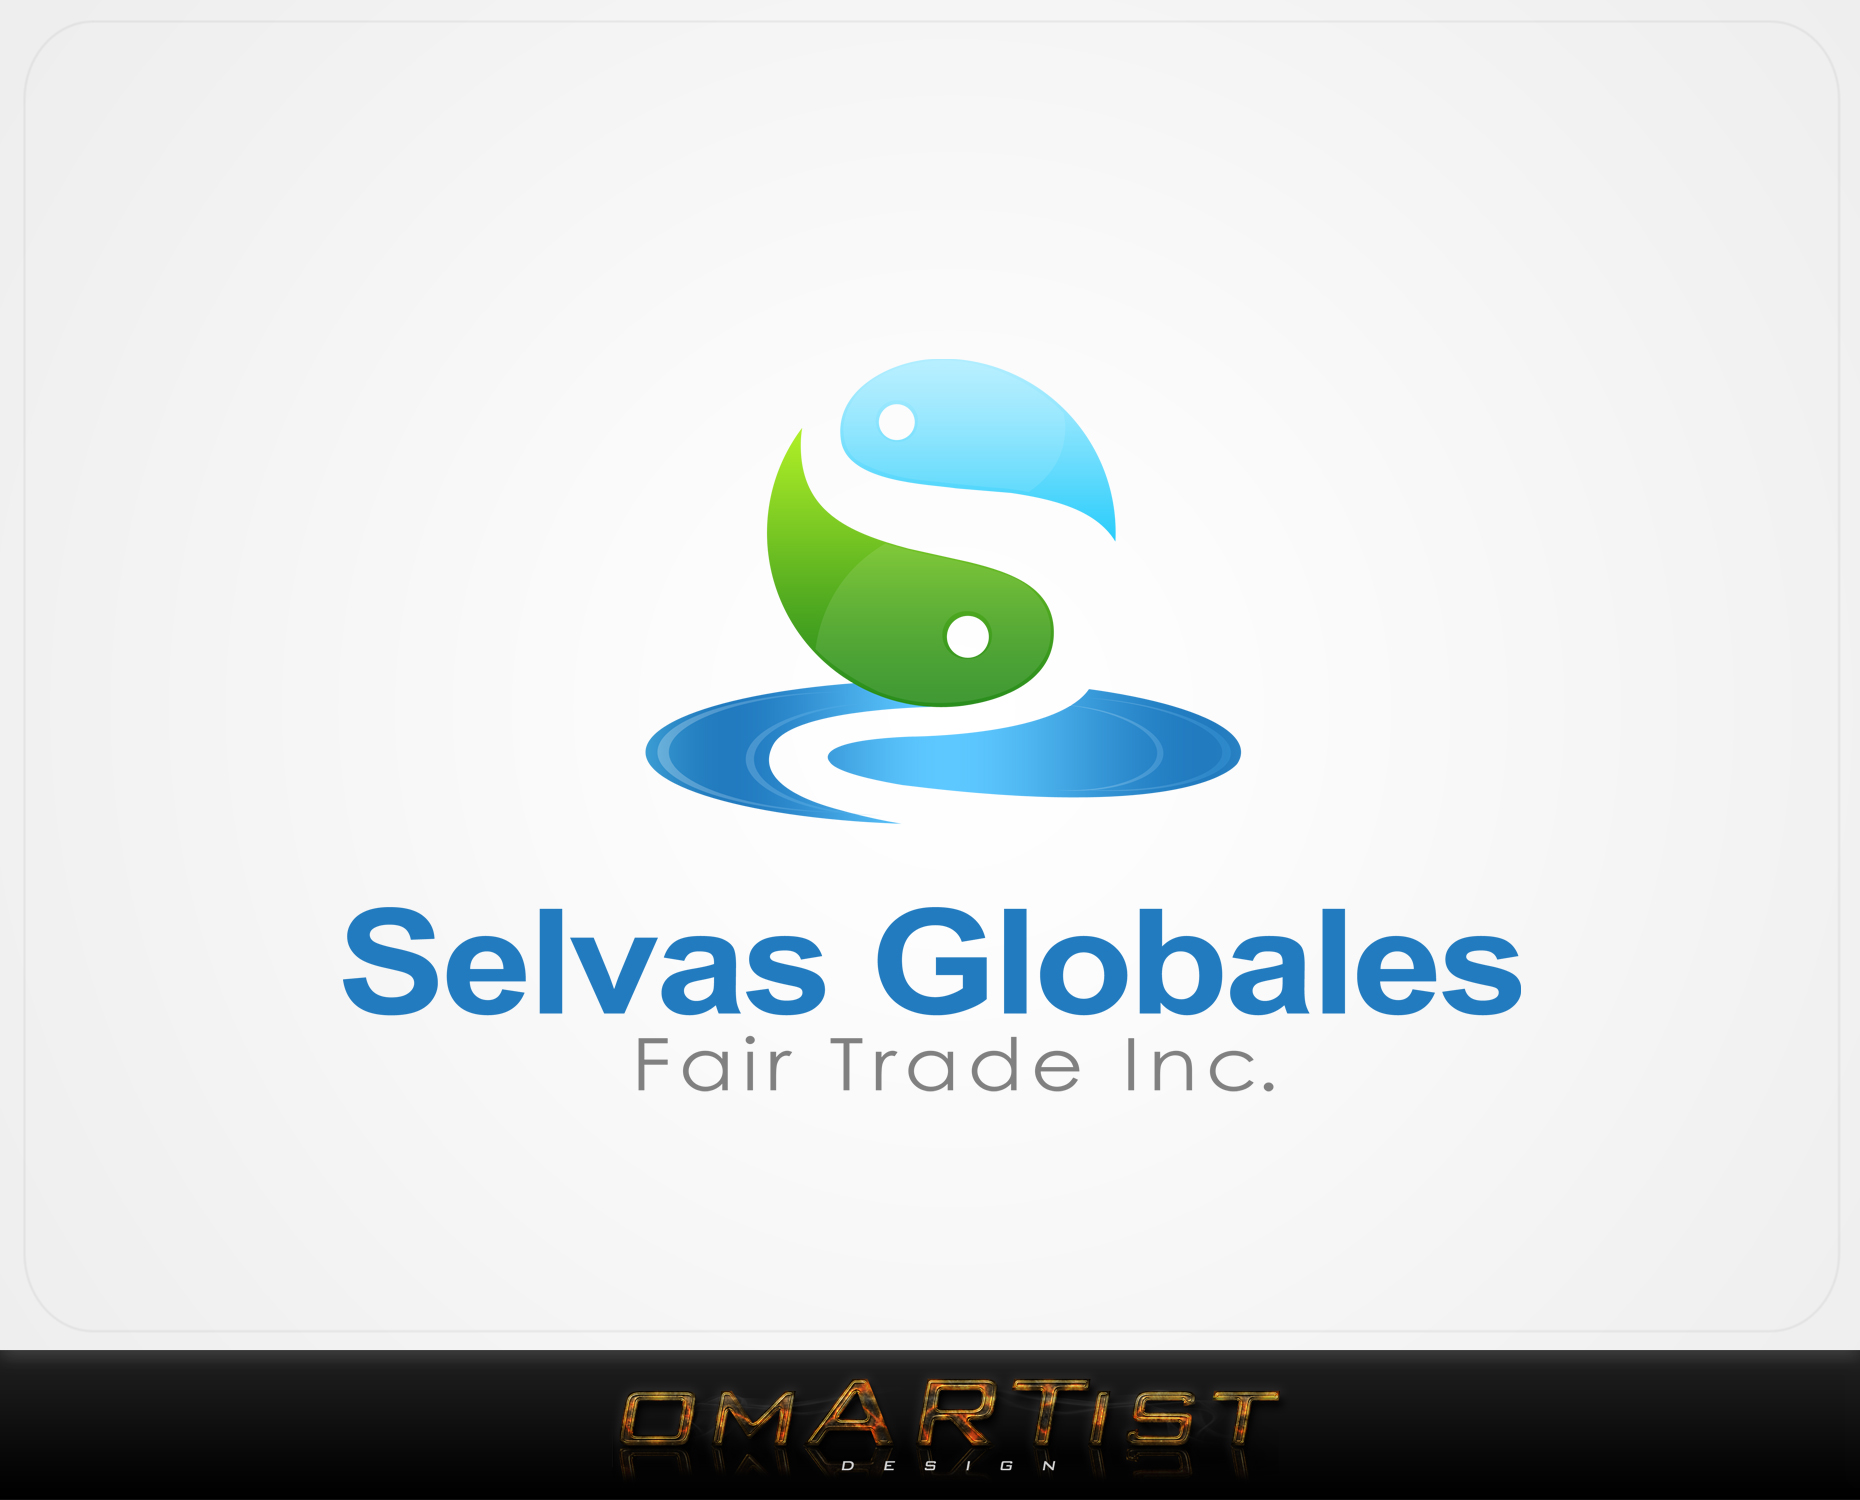 Logo Design by omARTist - Entry No. 50 in the Logo Design Contest Captivating Logo Design for Selvas Globales Fair Trade Inc..